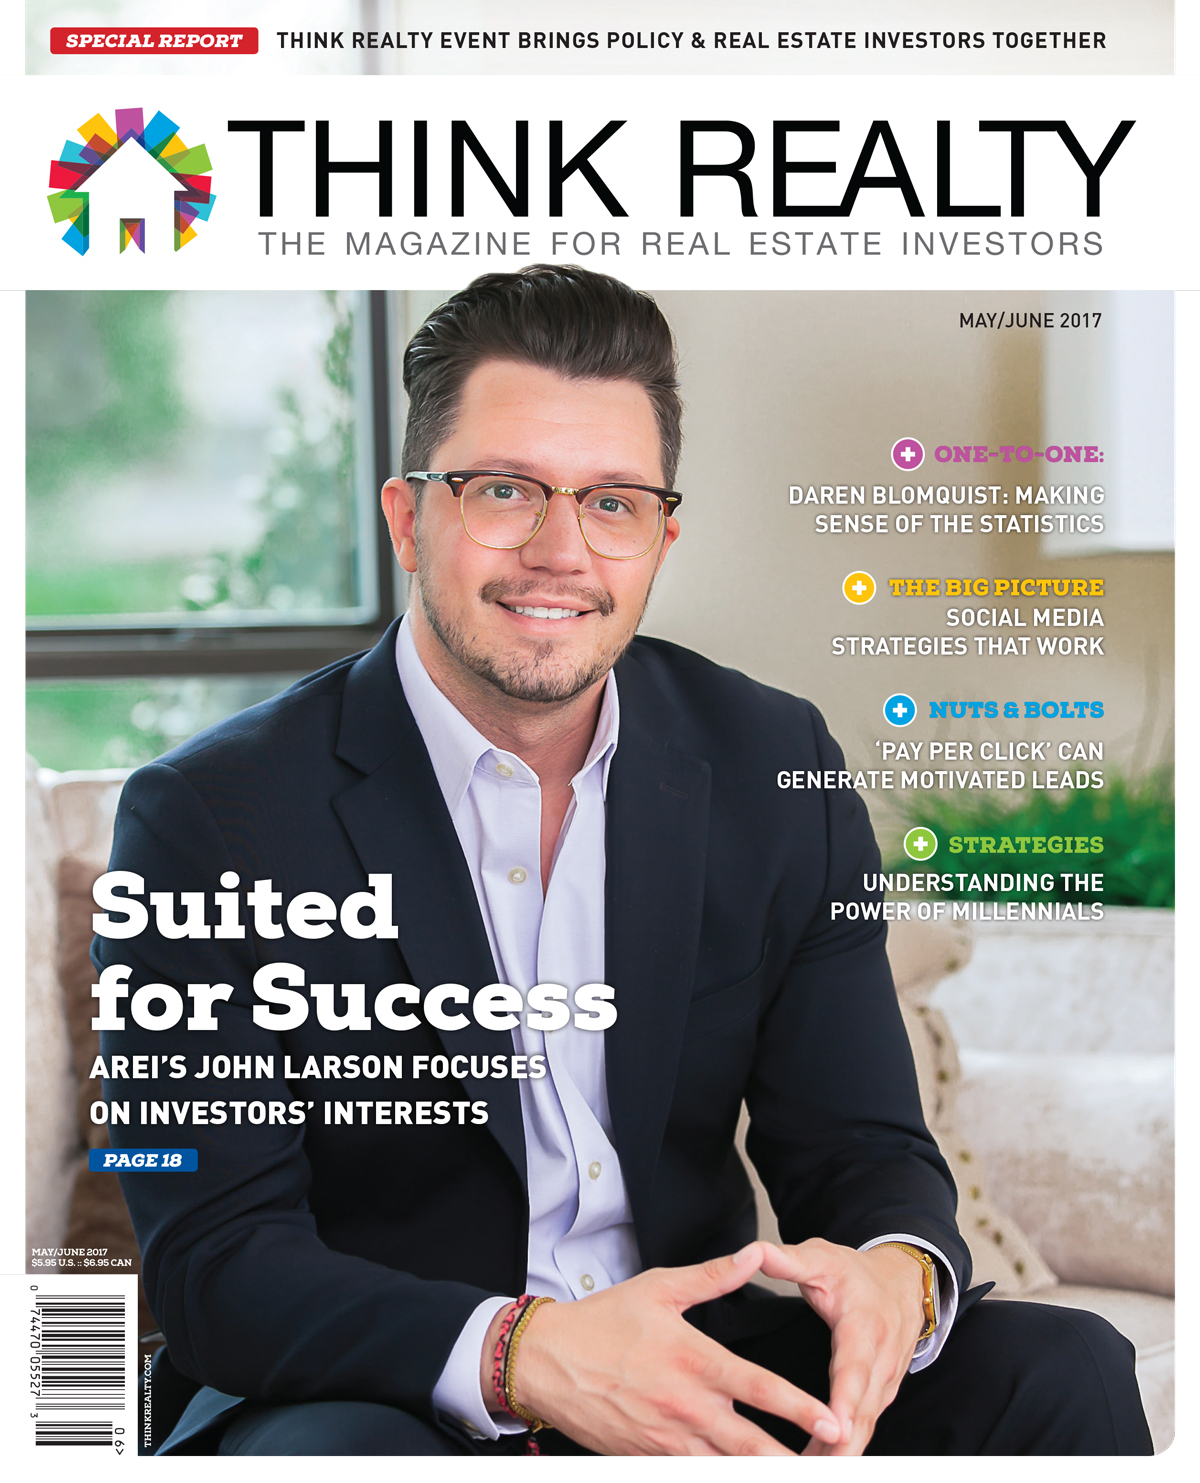 Think Realty Magazine Cover, John Larson